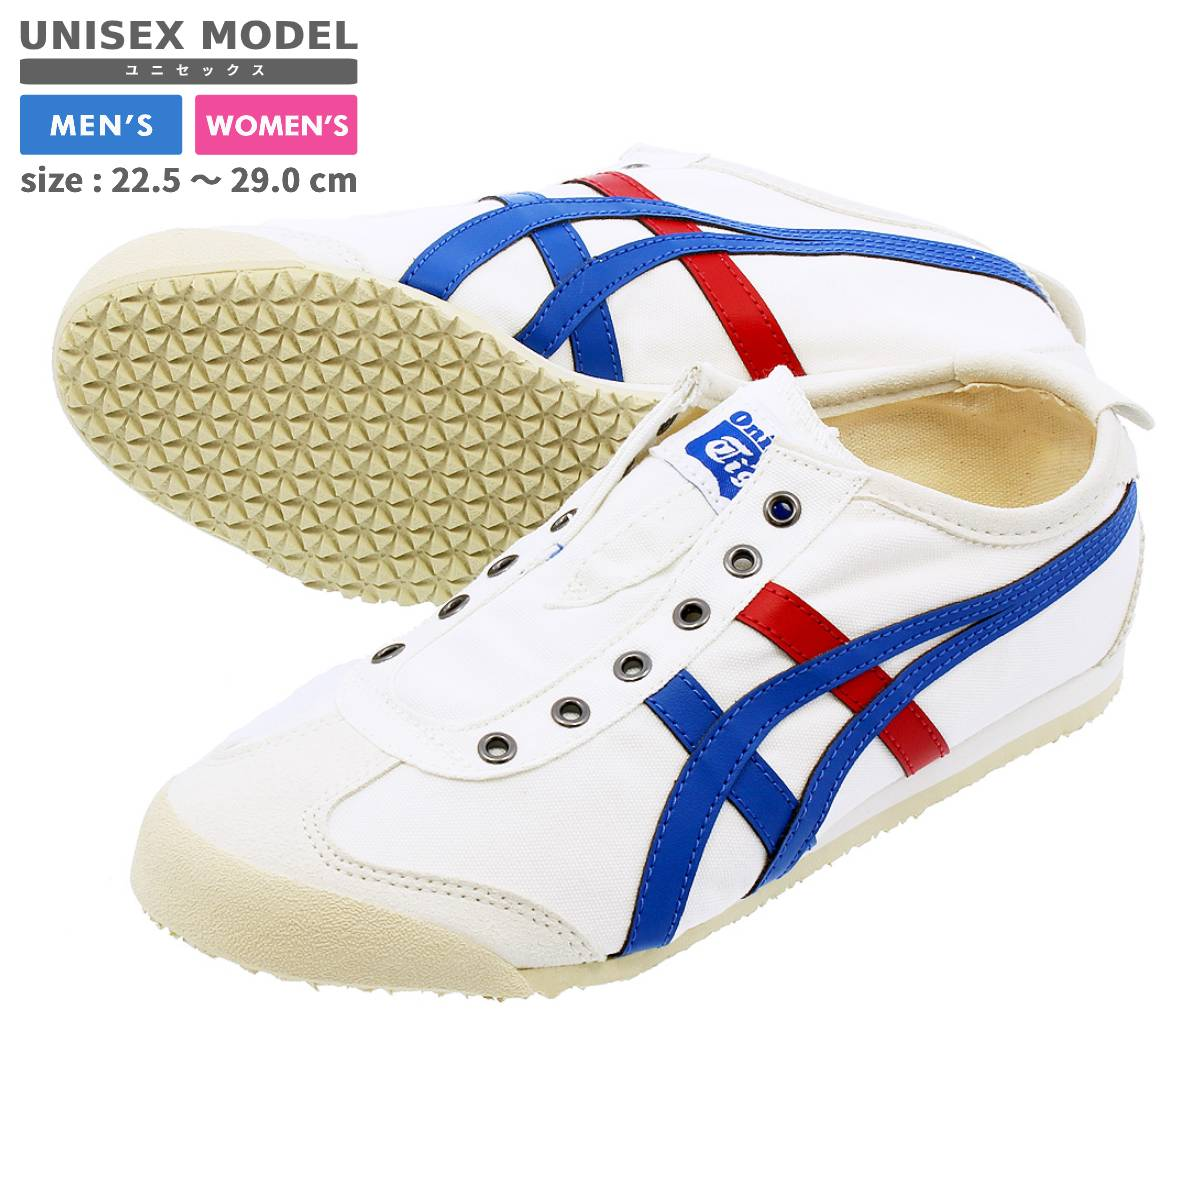 timeless design 8ea1b 7f7e1 Onitsuka Tiger MEXICO 66 SLIP-ON CV WHITE/BLUE/RED